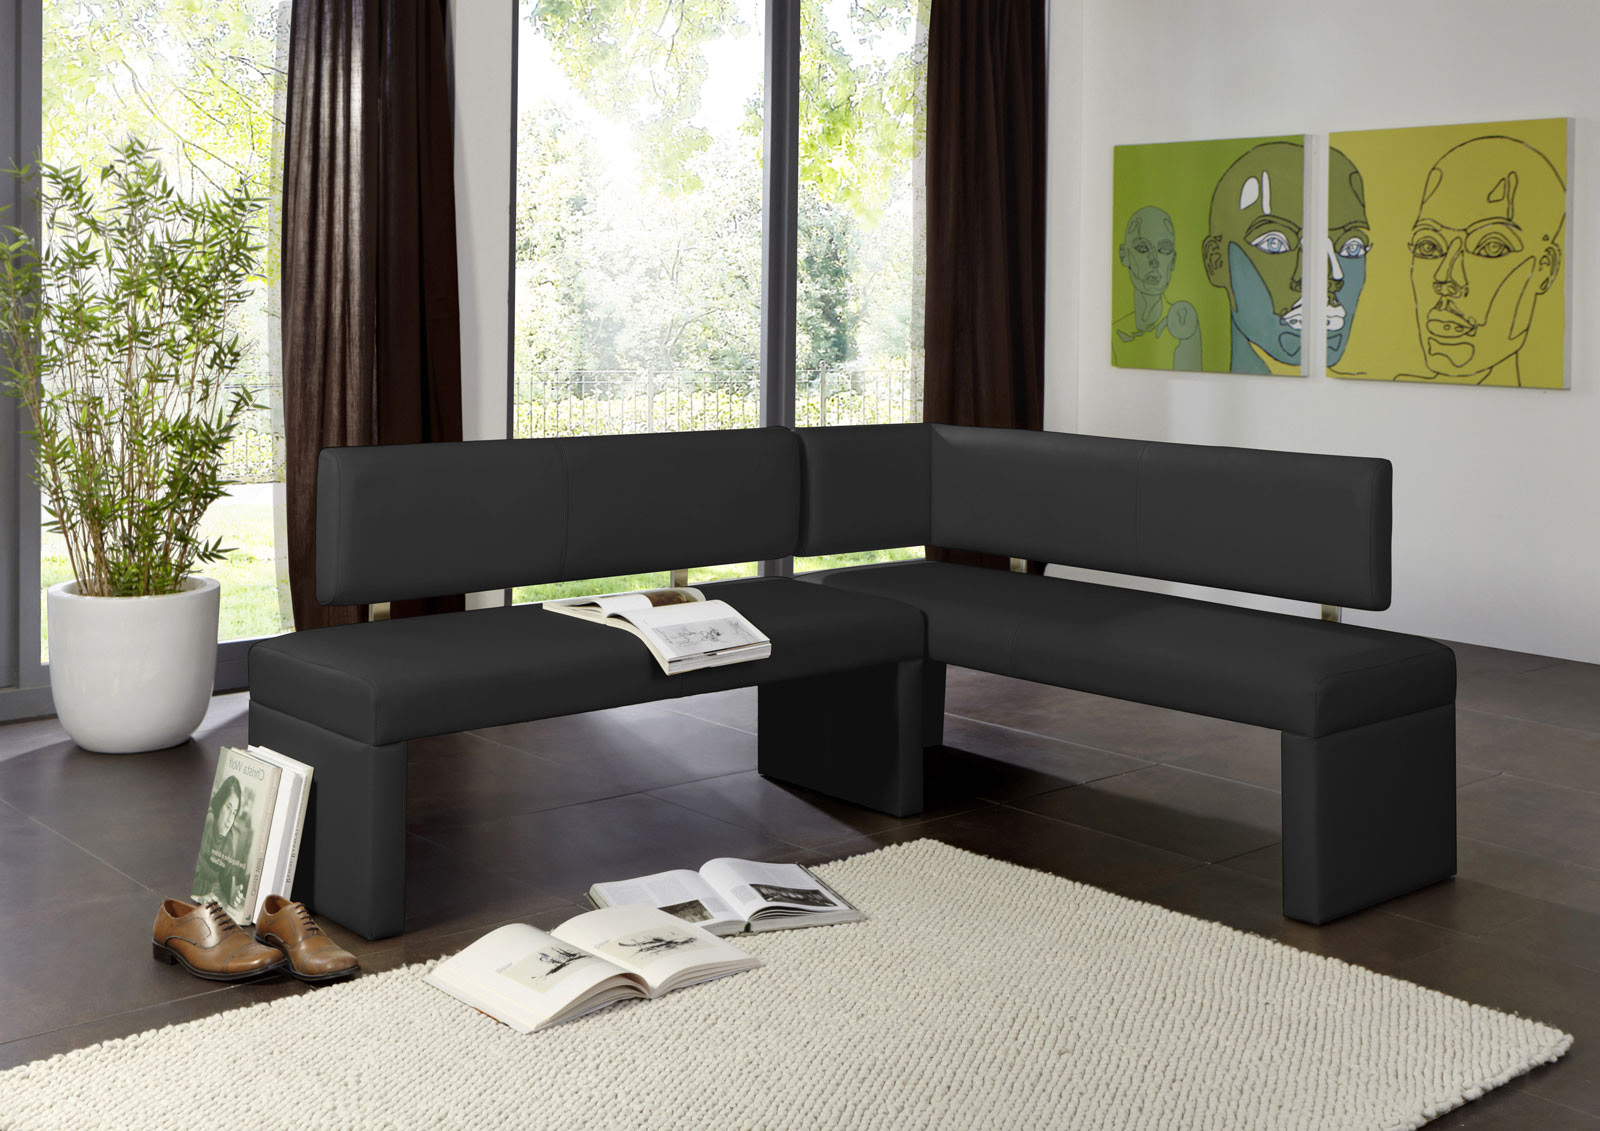 sam esszimmer eckbank recyceltes leder 180 x 130 cm. Black Bedroom Furniture Sets. Home Design Ideas